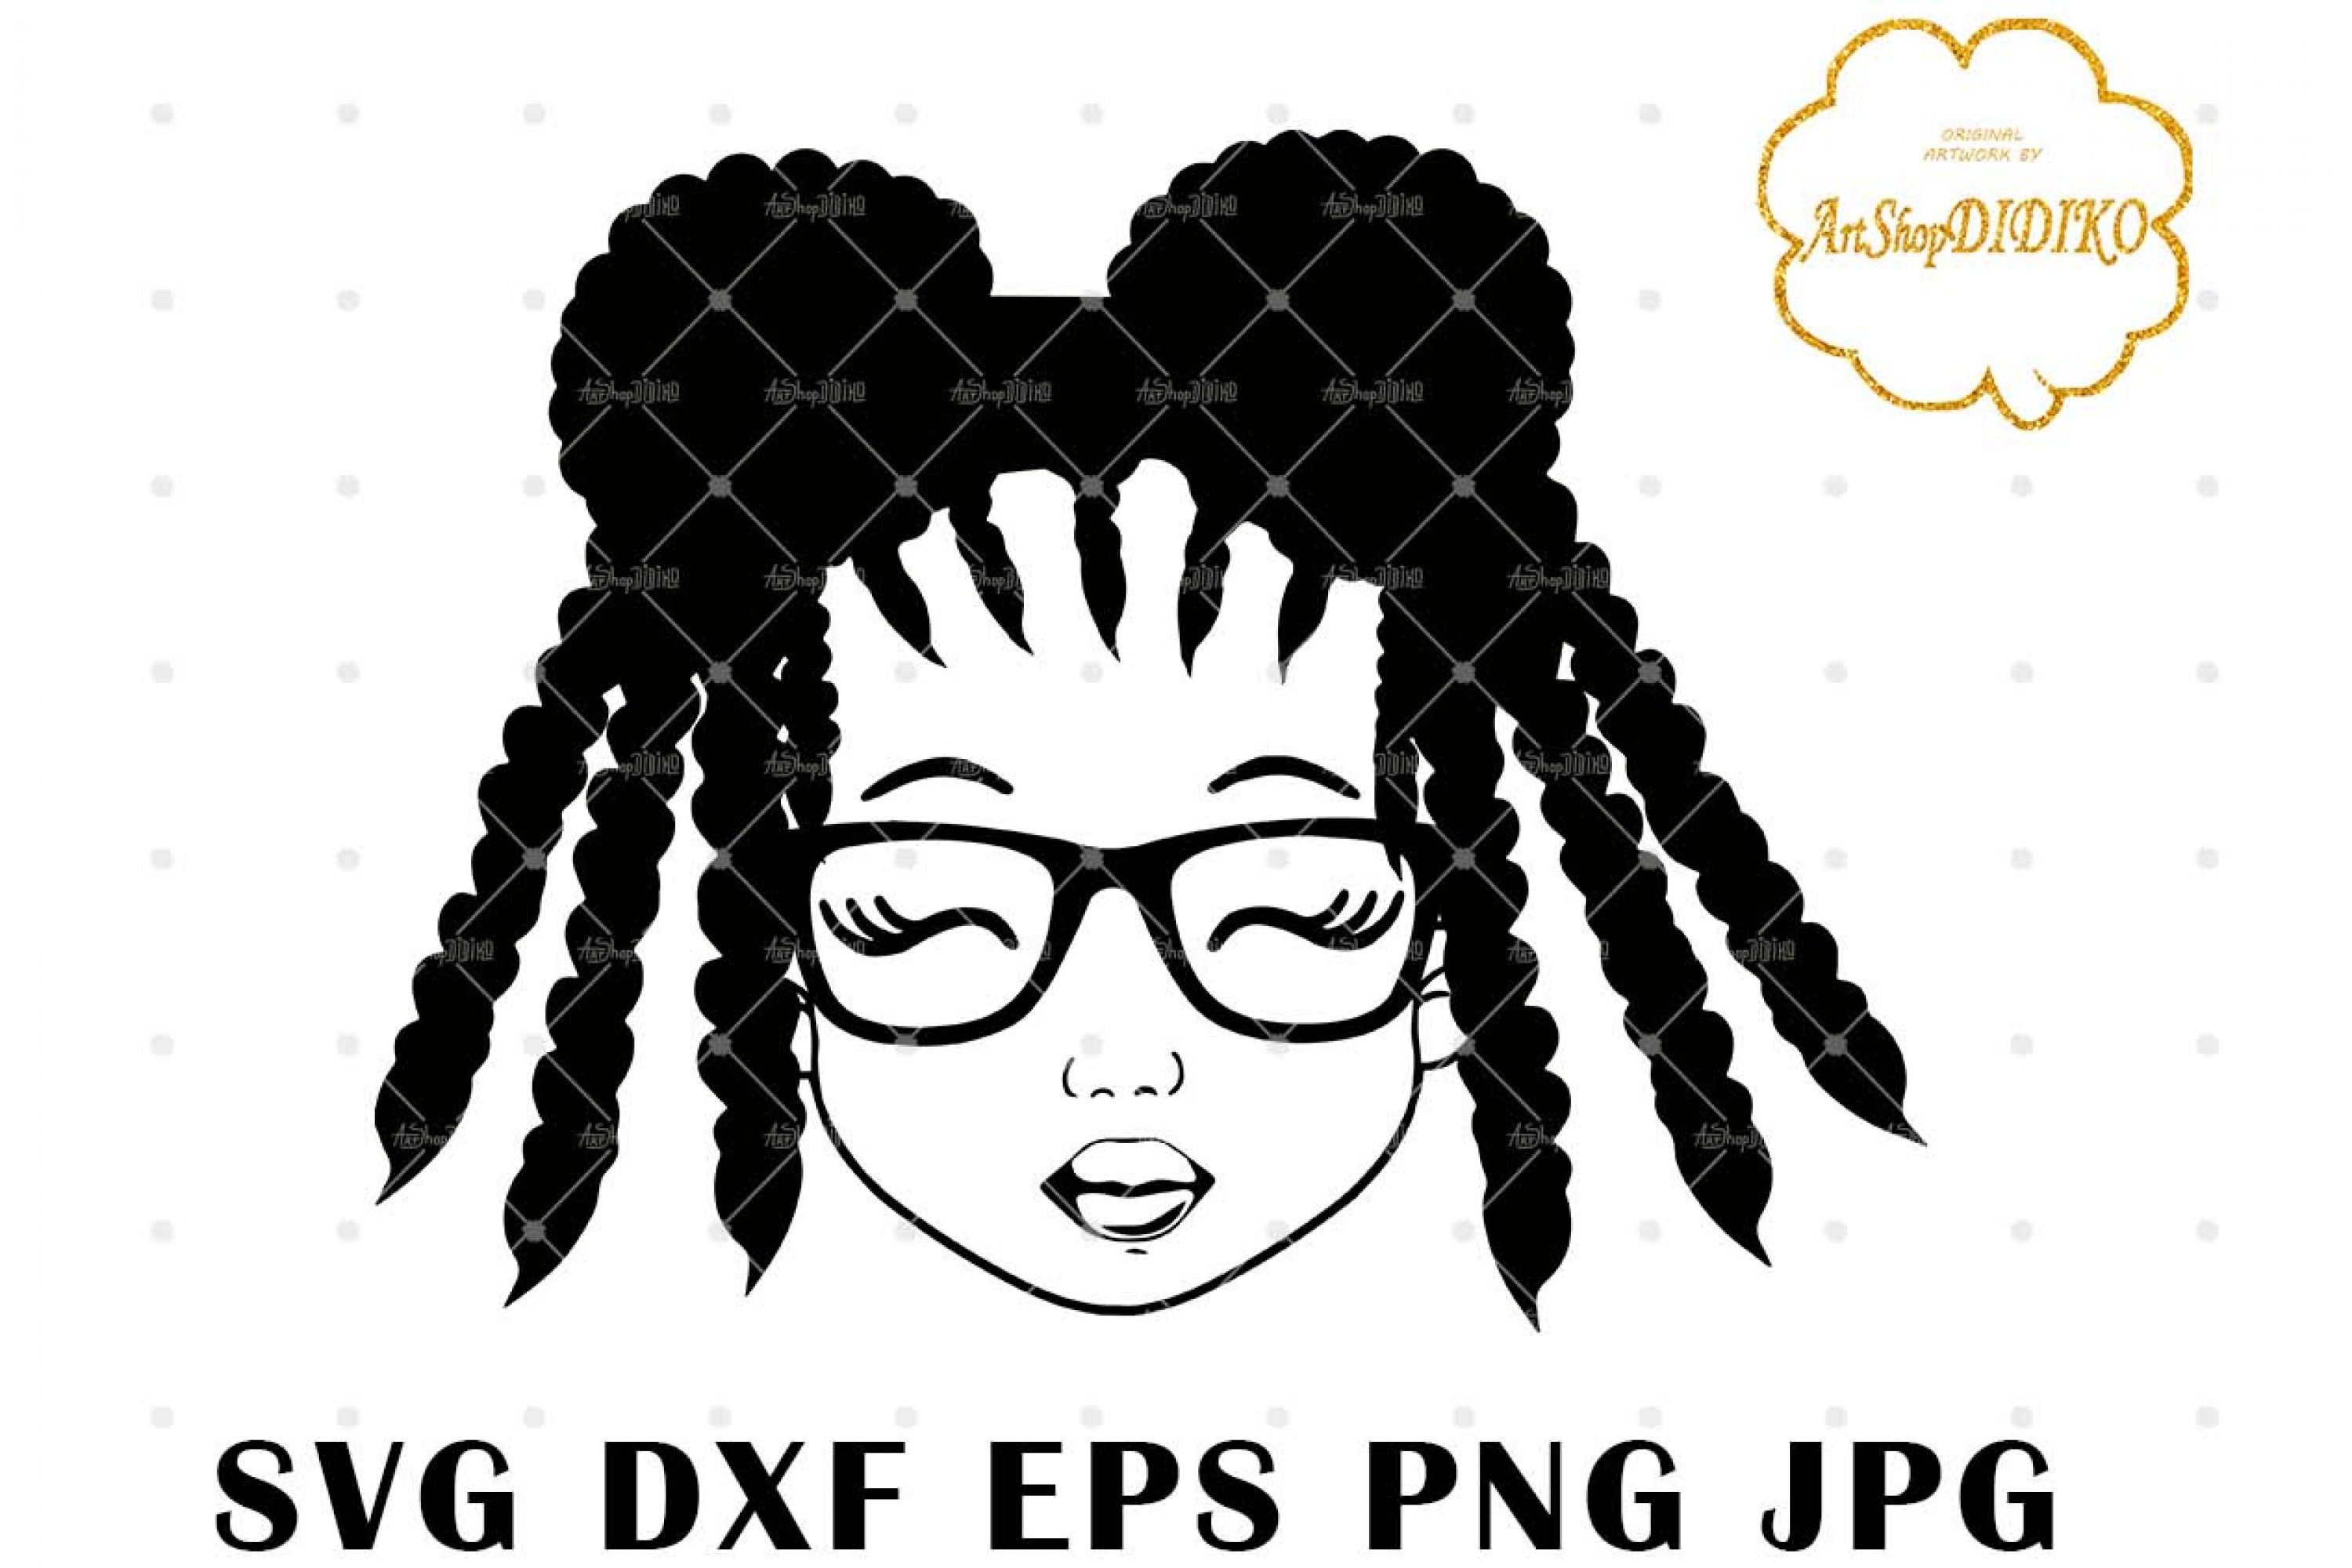 Cute Afro Girl With Glasses Silhouette SVG, Afro Puff Girl SVG, Afro Kid SVG, African American Girl SVG, DXF, EPS, PNG, JPG, Silhouette Files, Cricut Cut Files